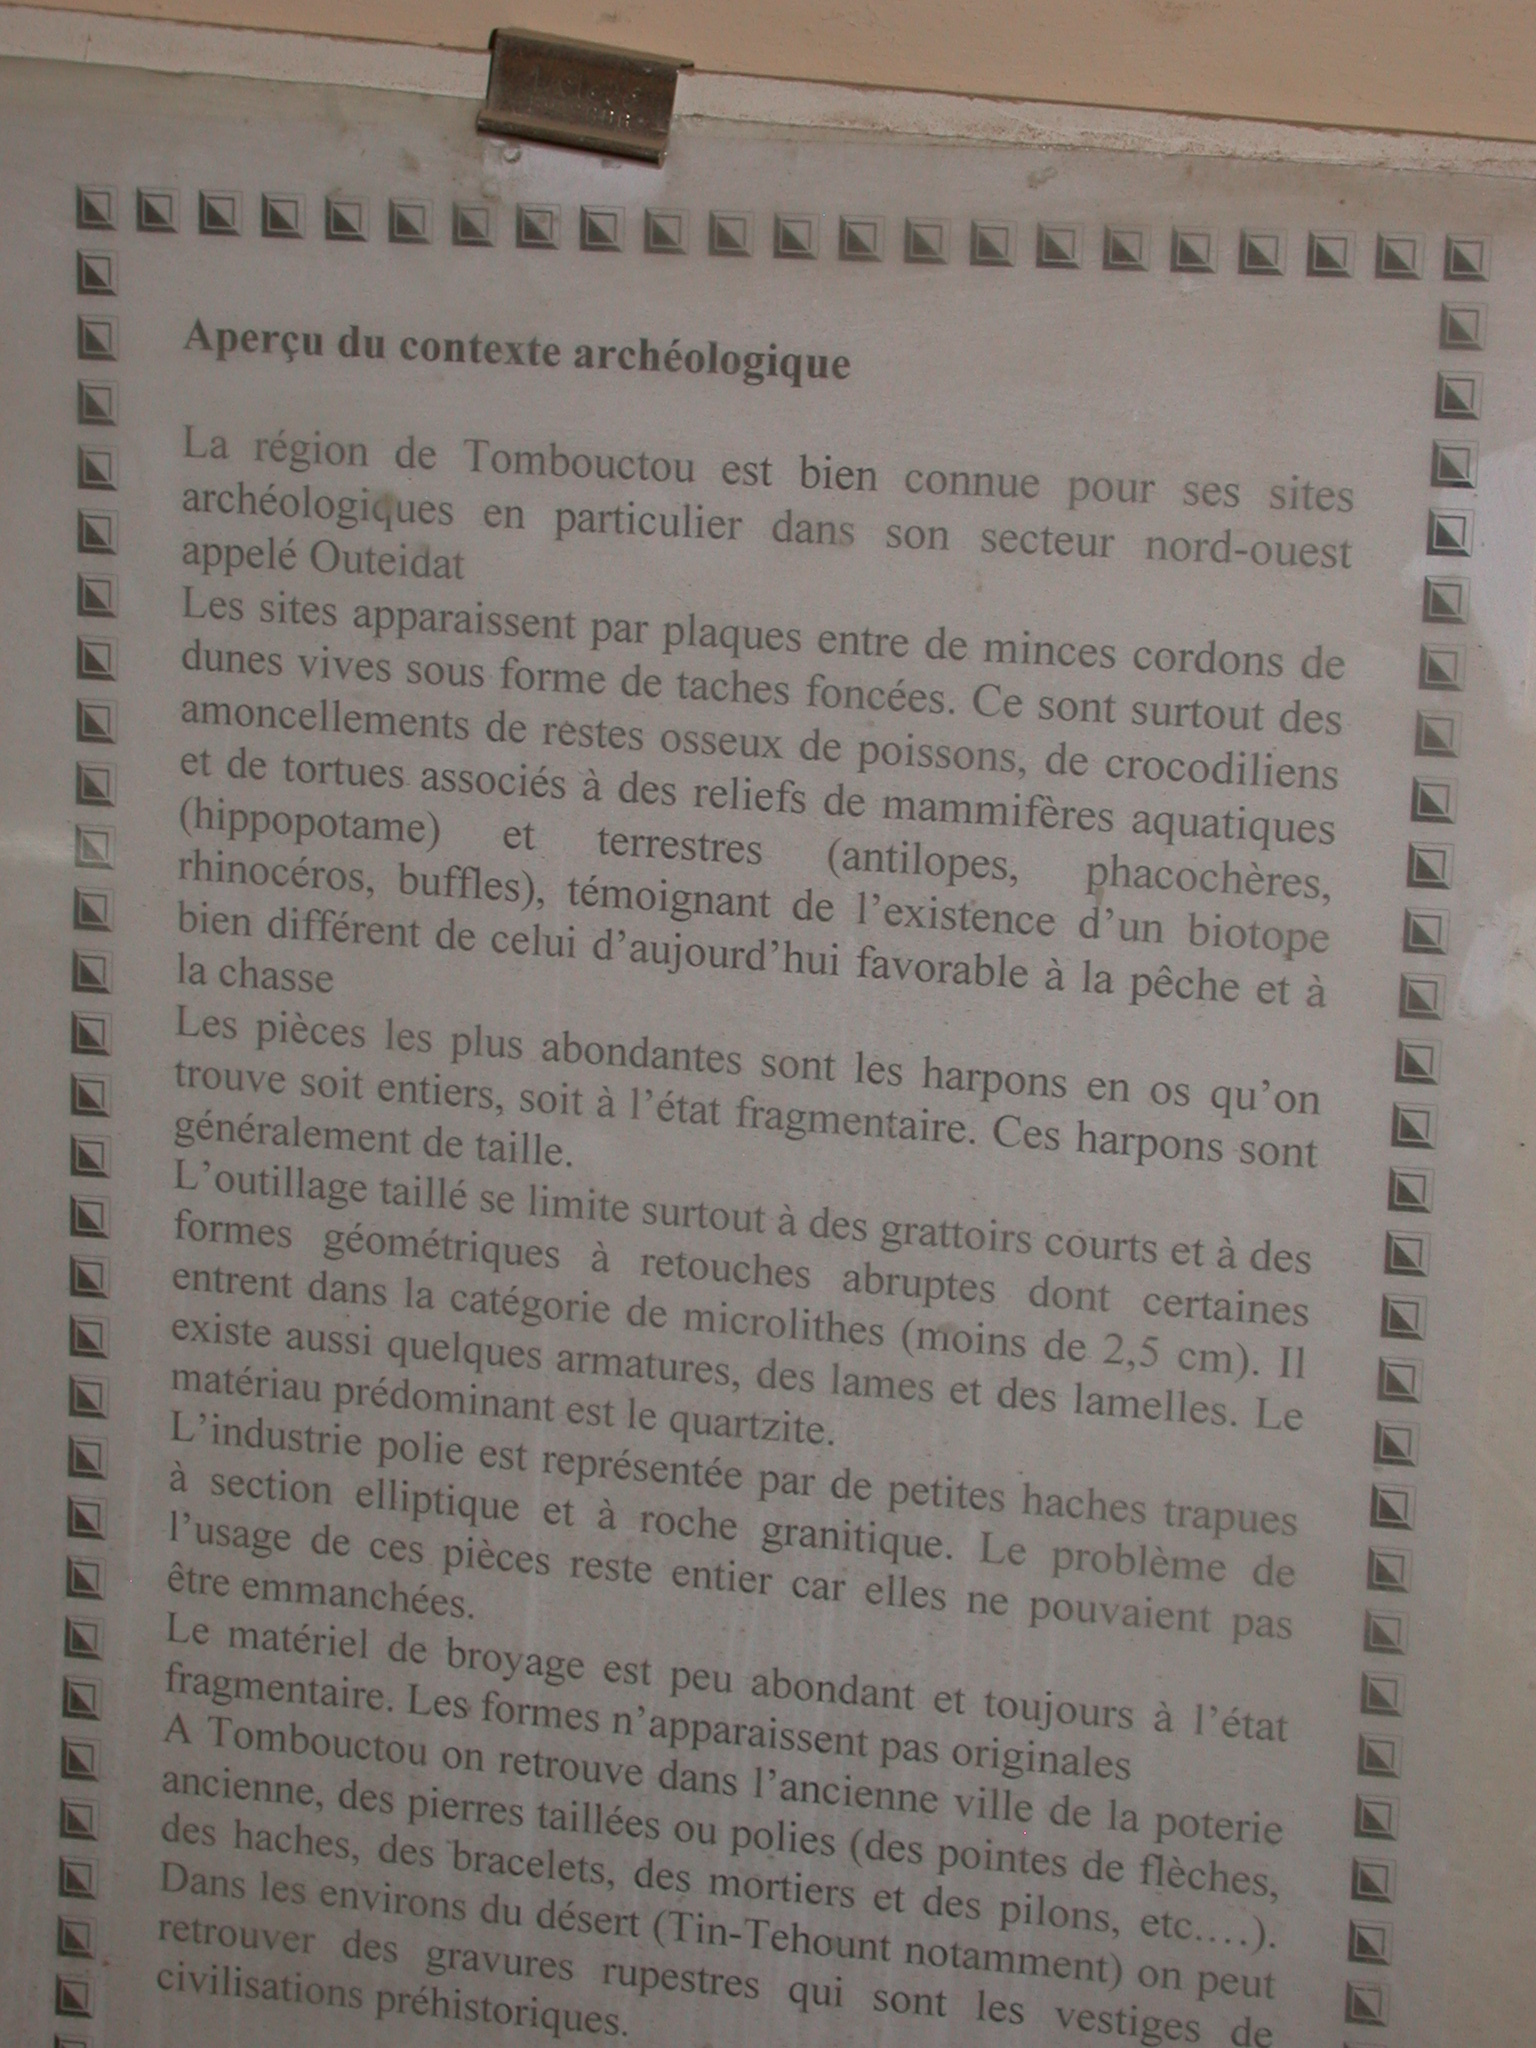 Description of View of Archaeological Context, Timbuktu Ethnological Museum, Timbuktu, Mali